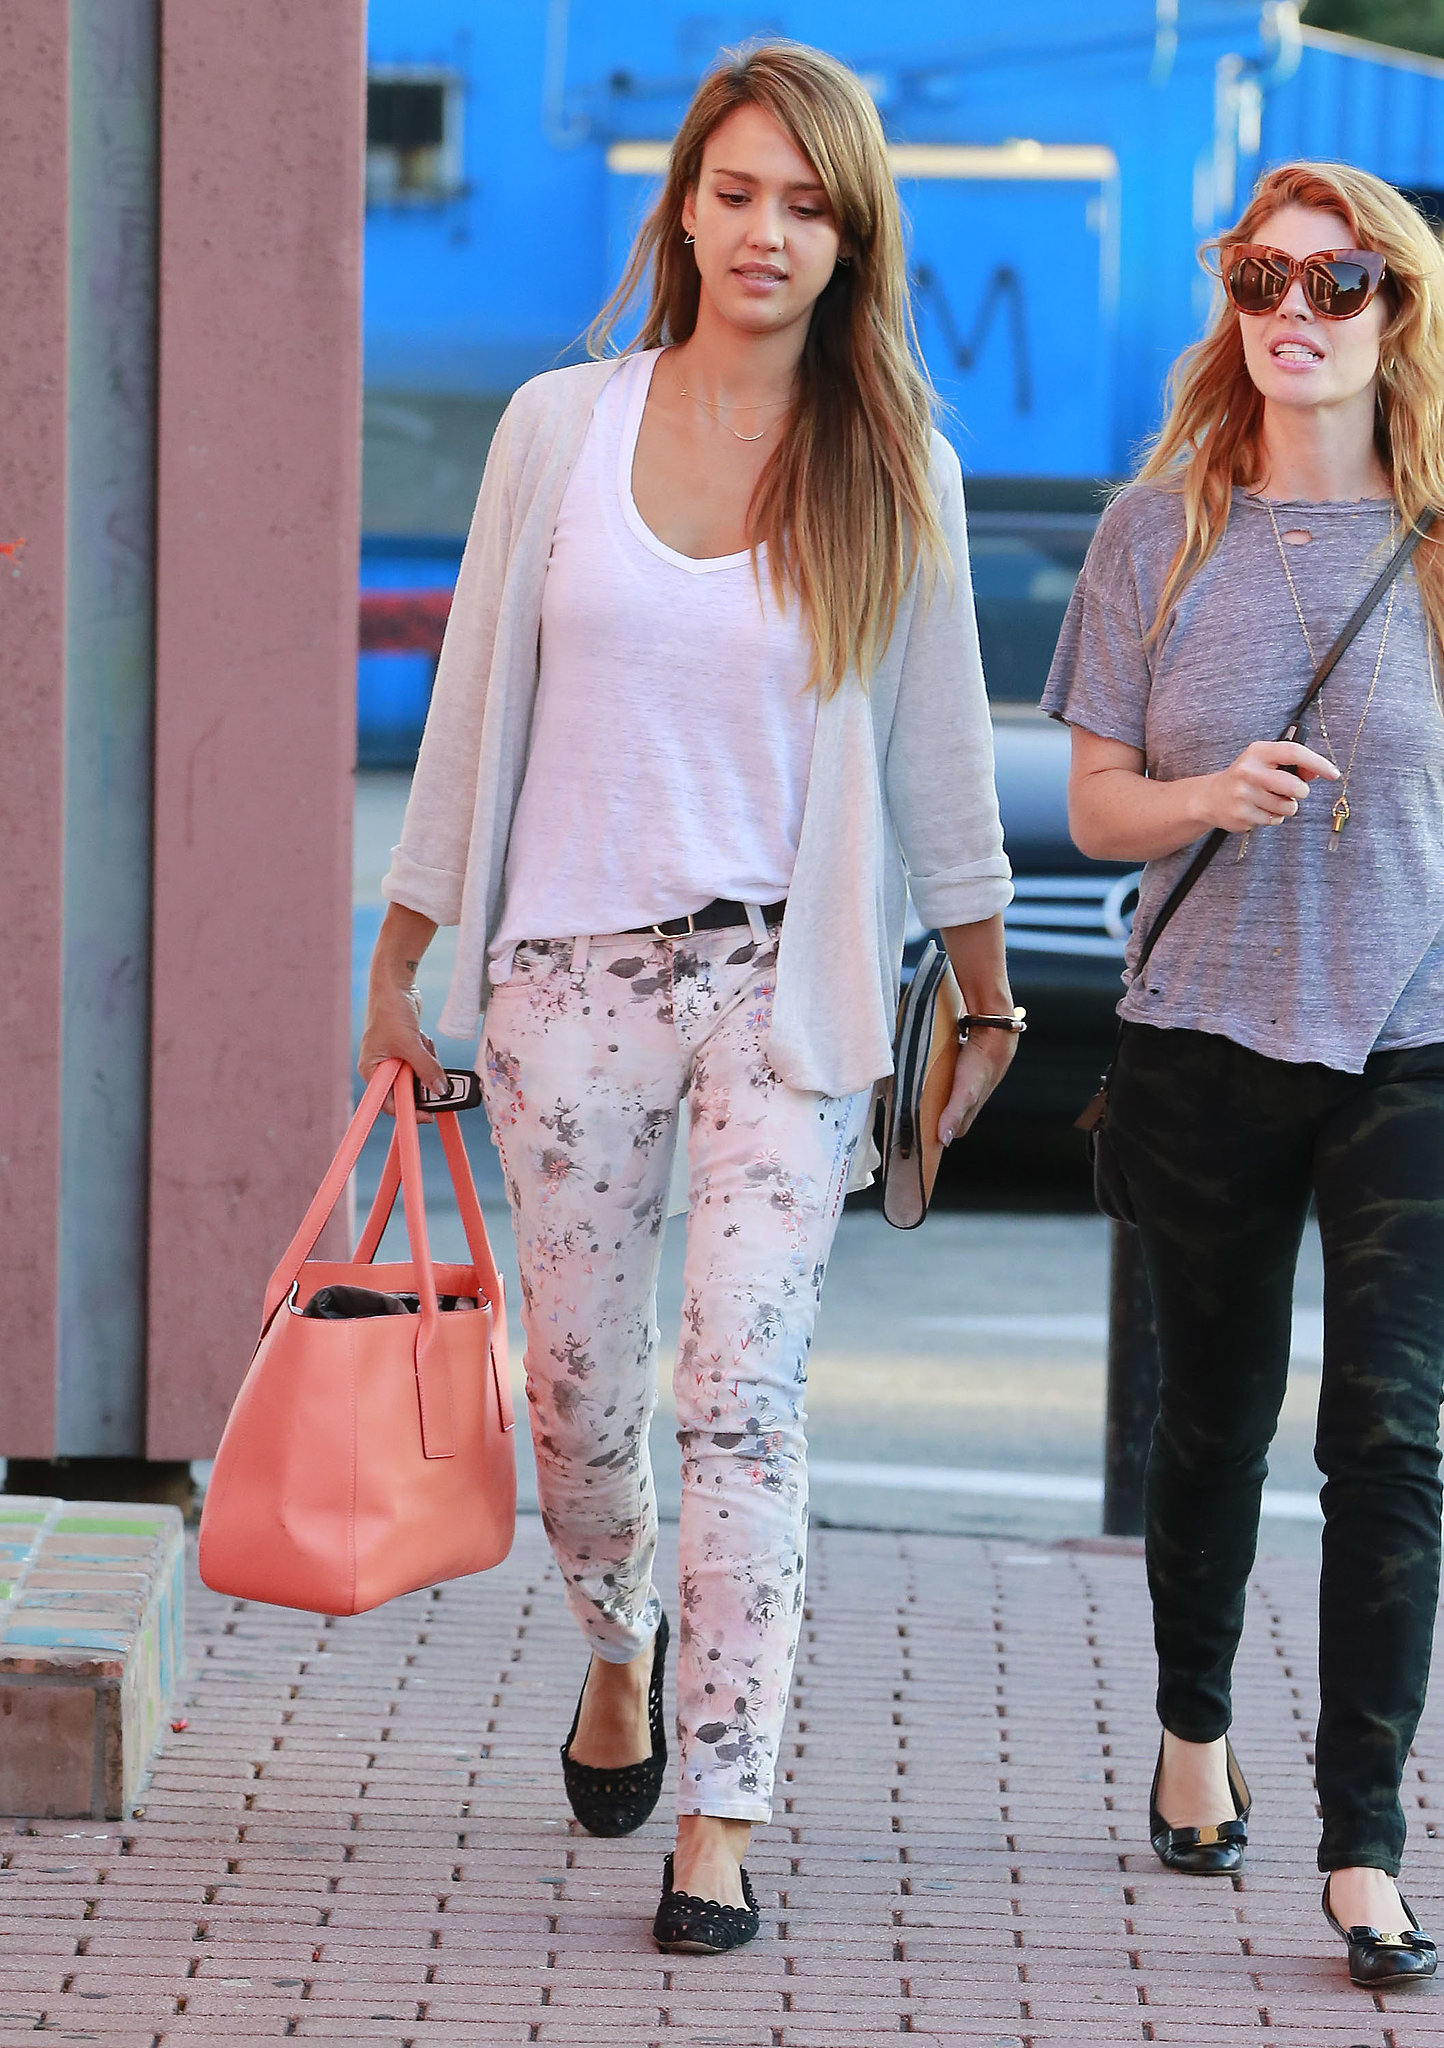 While on her way to a birthday party, Jessica blossomed in floral Textile Elizabeth and James denim.